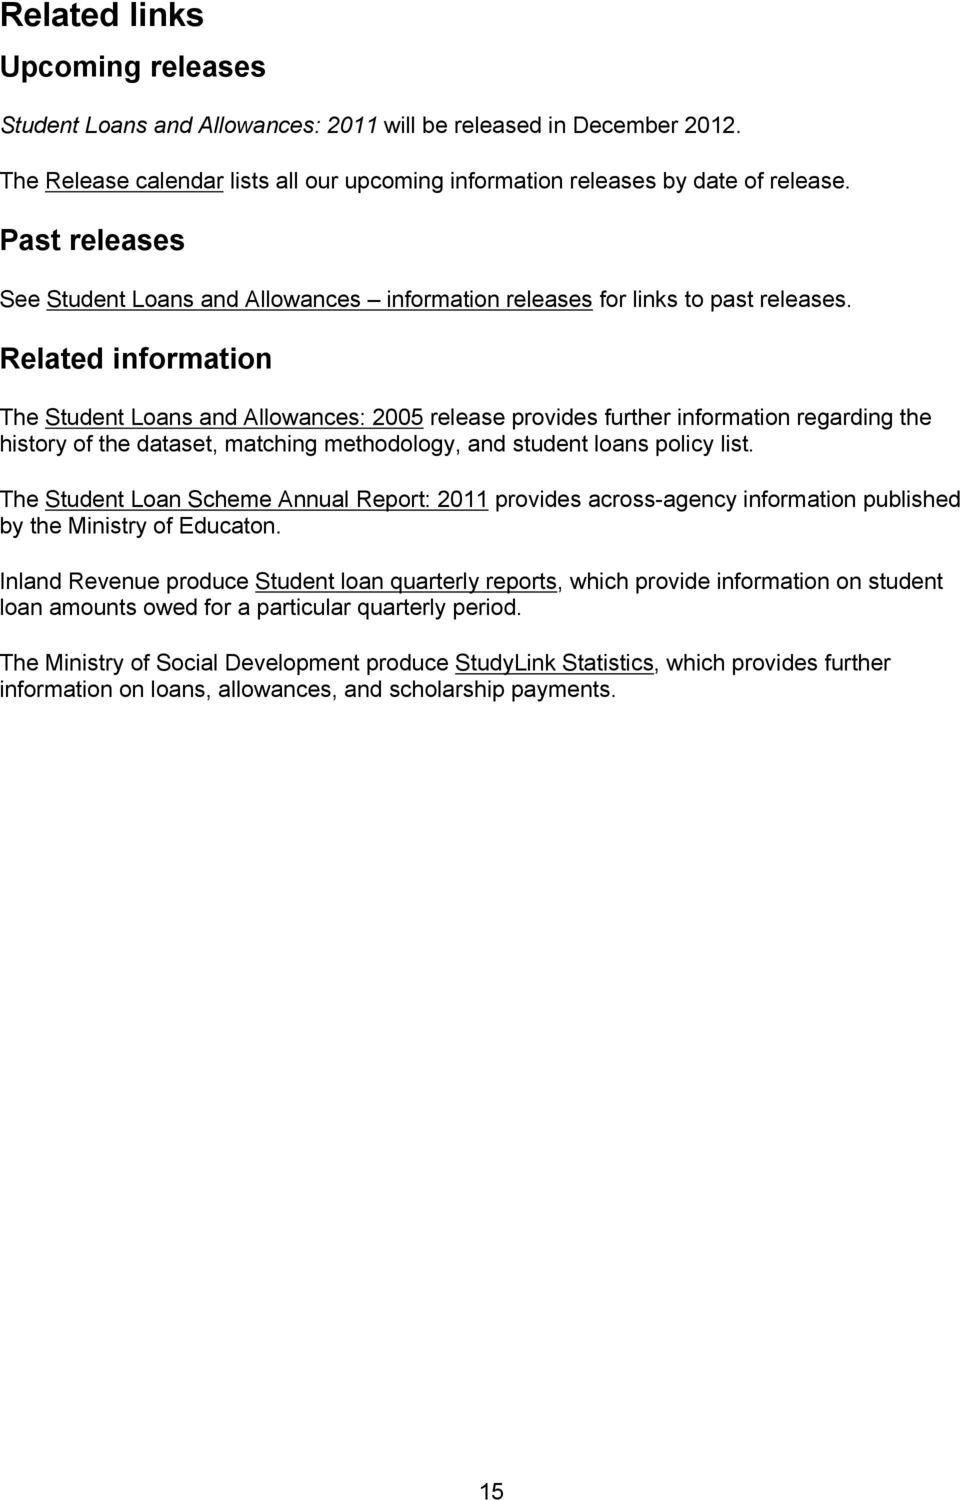 Related information The Student Loans and Allowances: 2005 release provides further information regarding the history of the dataset, matching methodology, and student loans policy list.